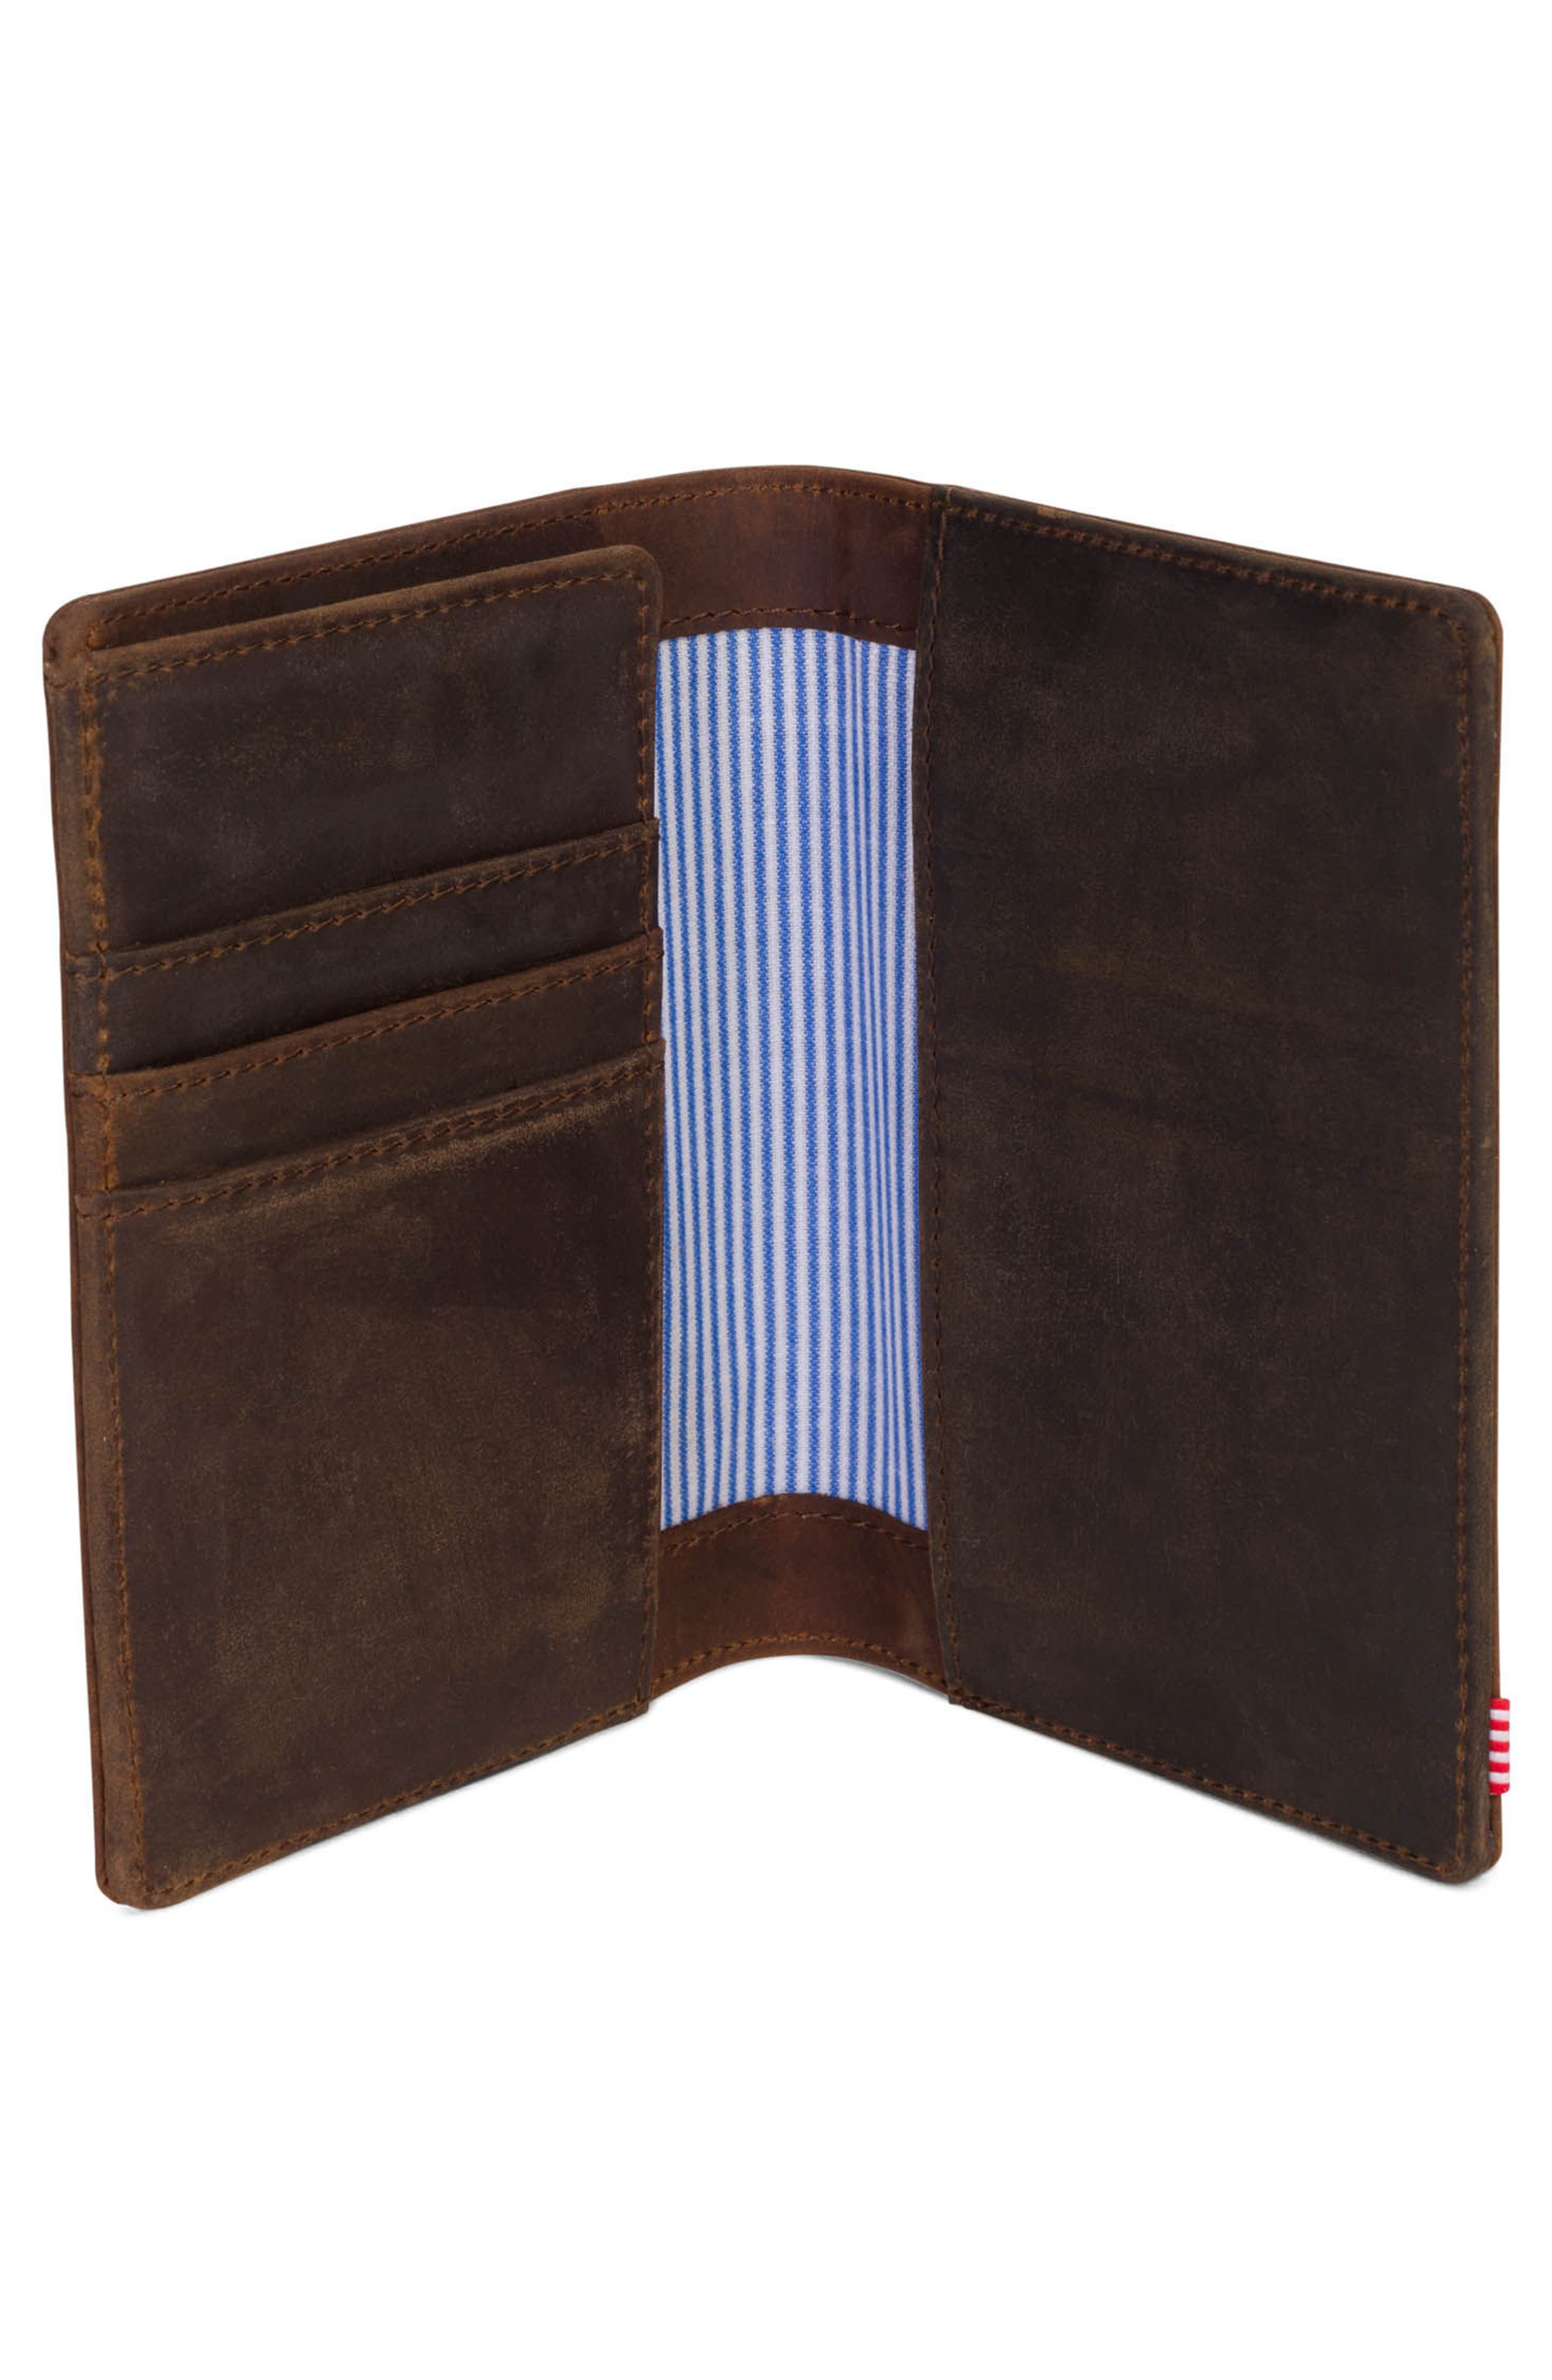 Raynor Nubuck Leather Passport Holder,                             Alternate thumbnail 2, color,                             Brown